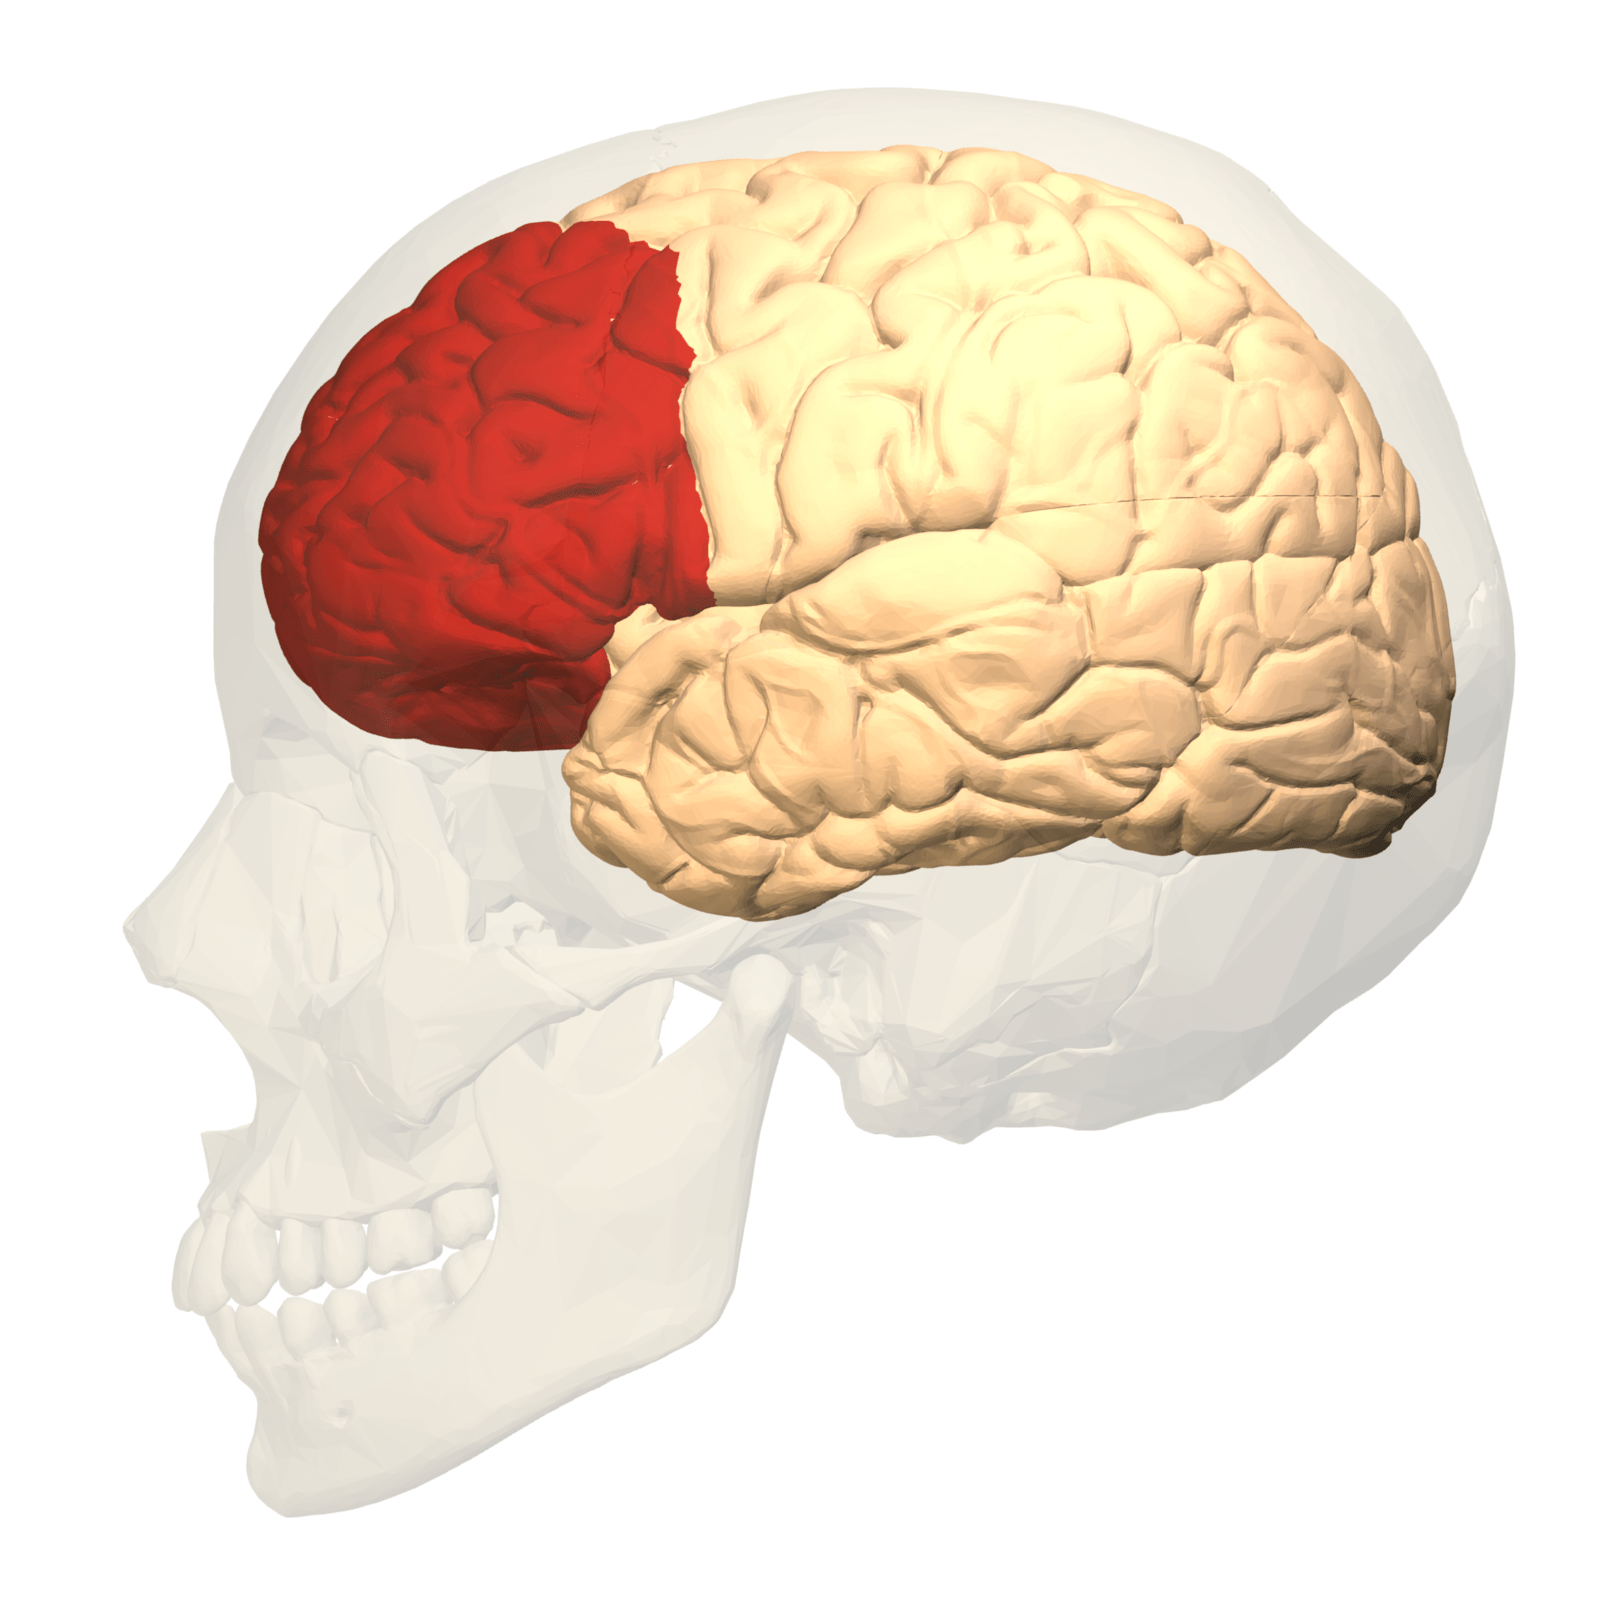 Brain with prefrontal cortex highlighted in red.